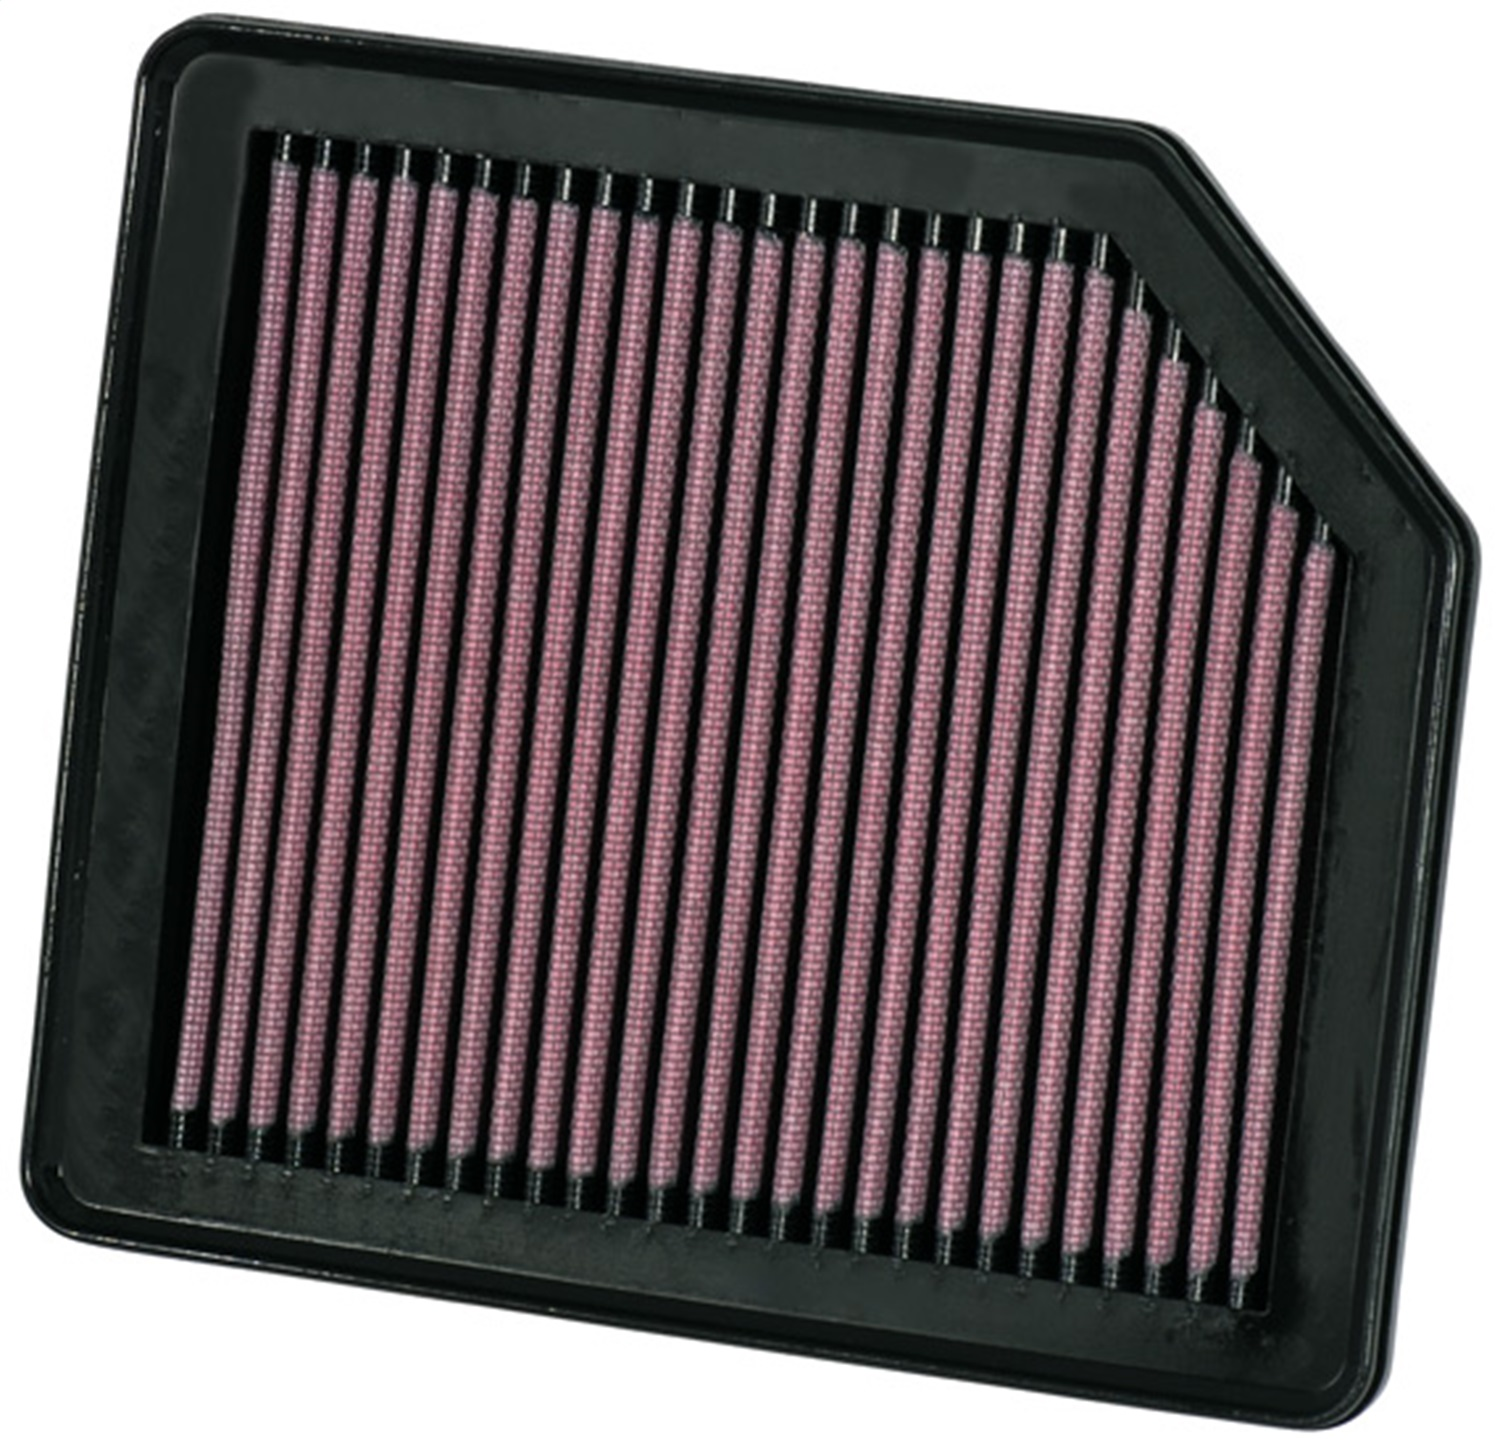 K&N Filters 33-2342 Air Filter Fits 06-11 Civic 33-2342